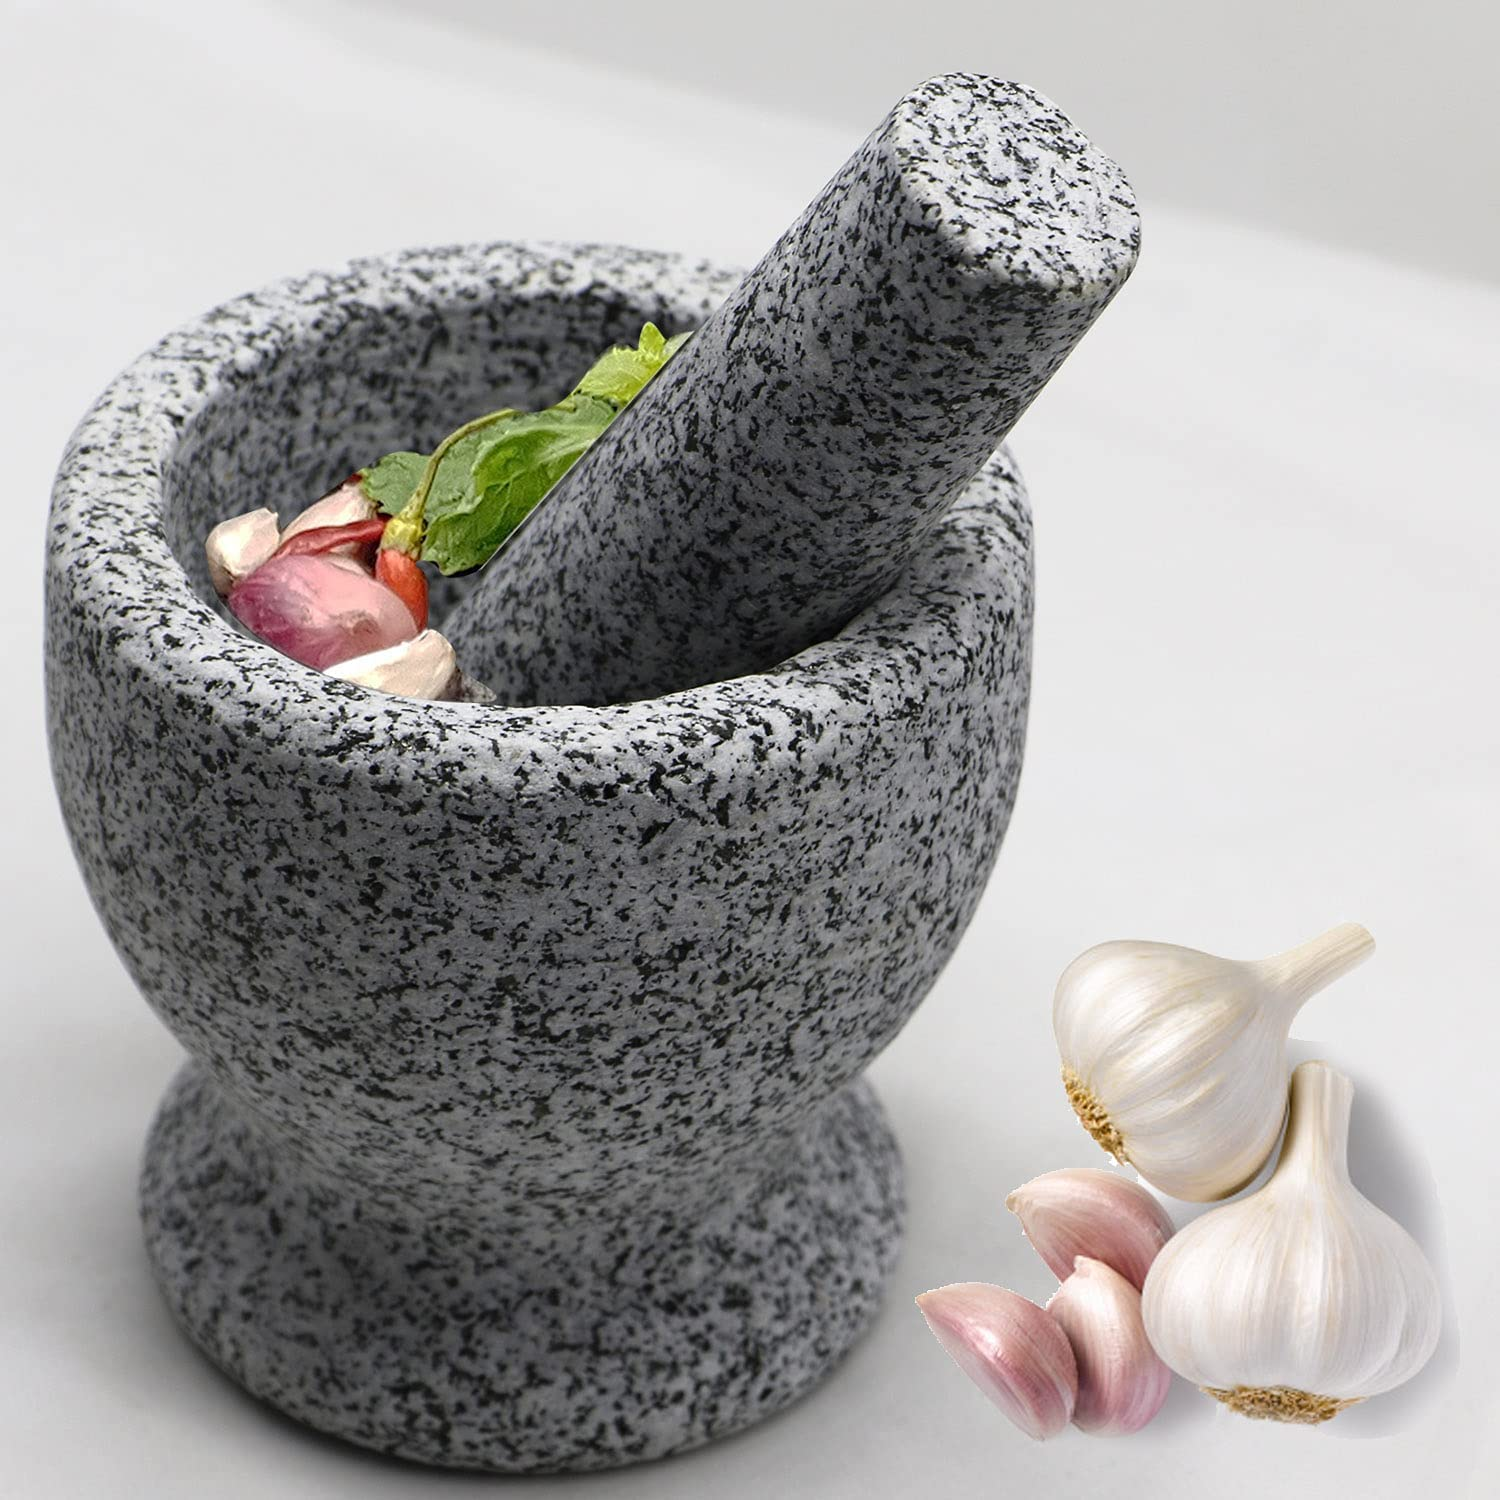 5 Inch 2 Cup-Capacity Ranking integrated 1st place New arrival Granite Mortar Set - Pestle One and